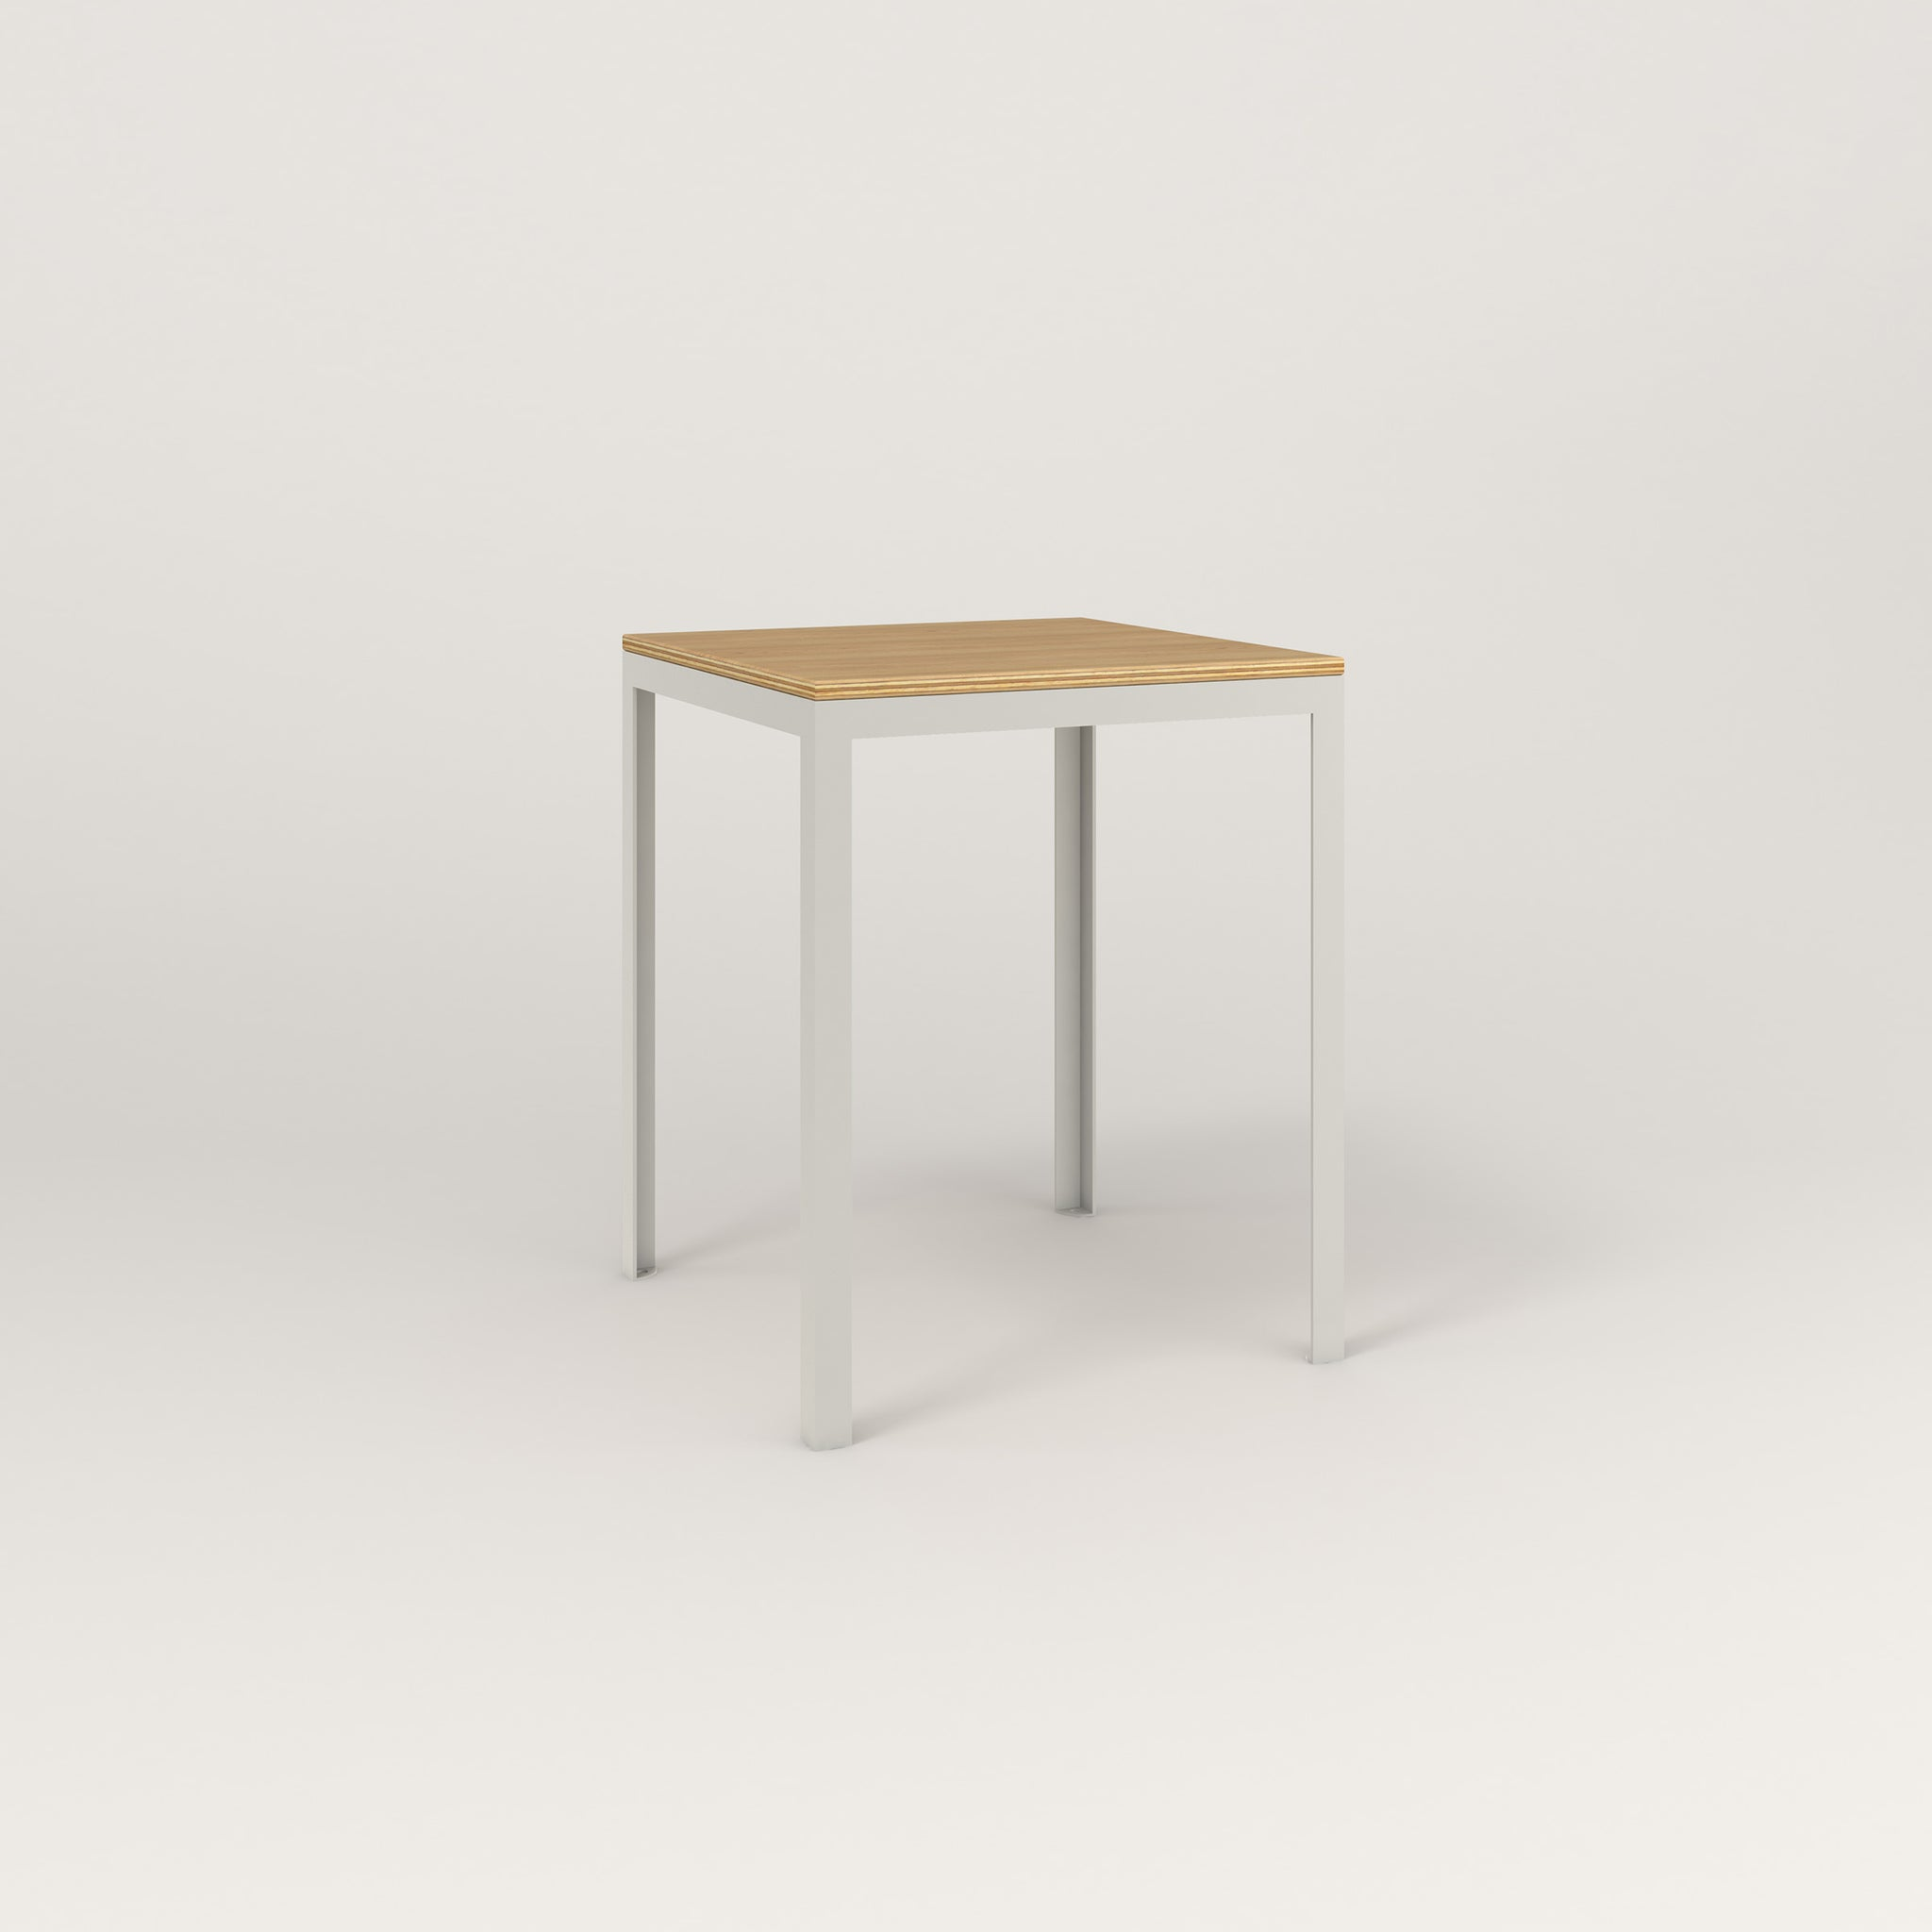 RAD Signature Square Cafe Table, Wood Veneer in white powder coat.